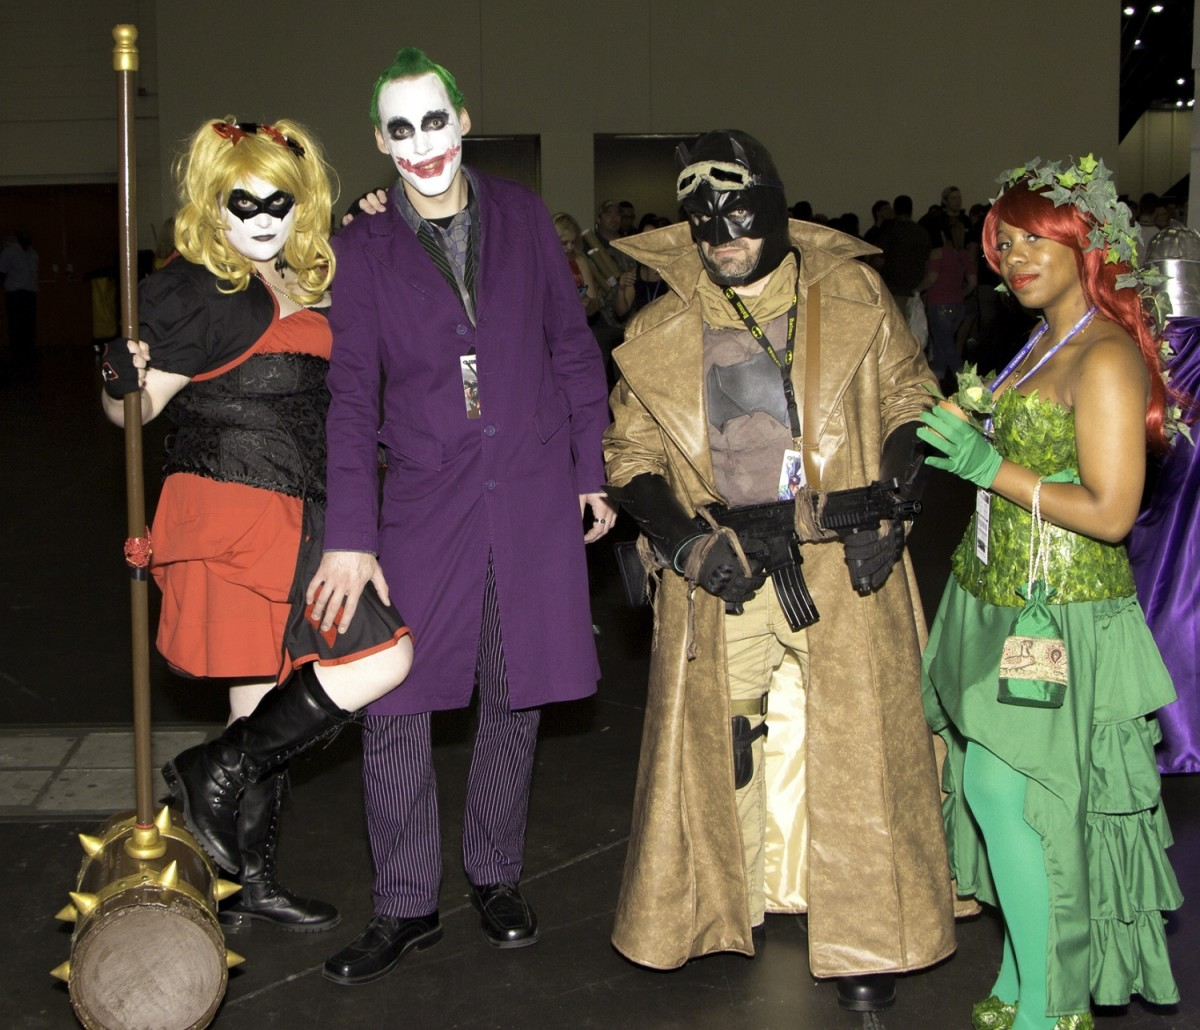 My wife, myself, and some of our friends dressed as Batman villains from Comicpalooza 2016.